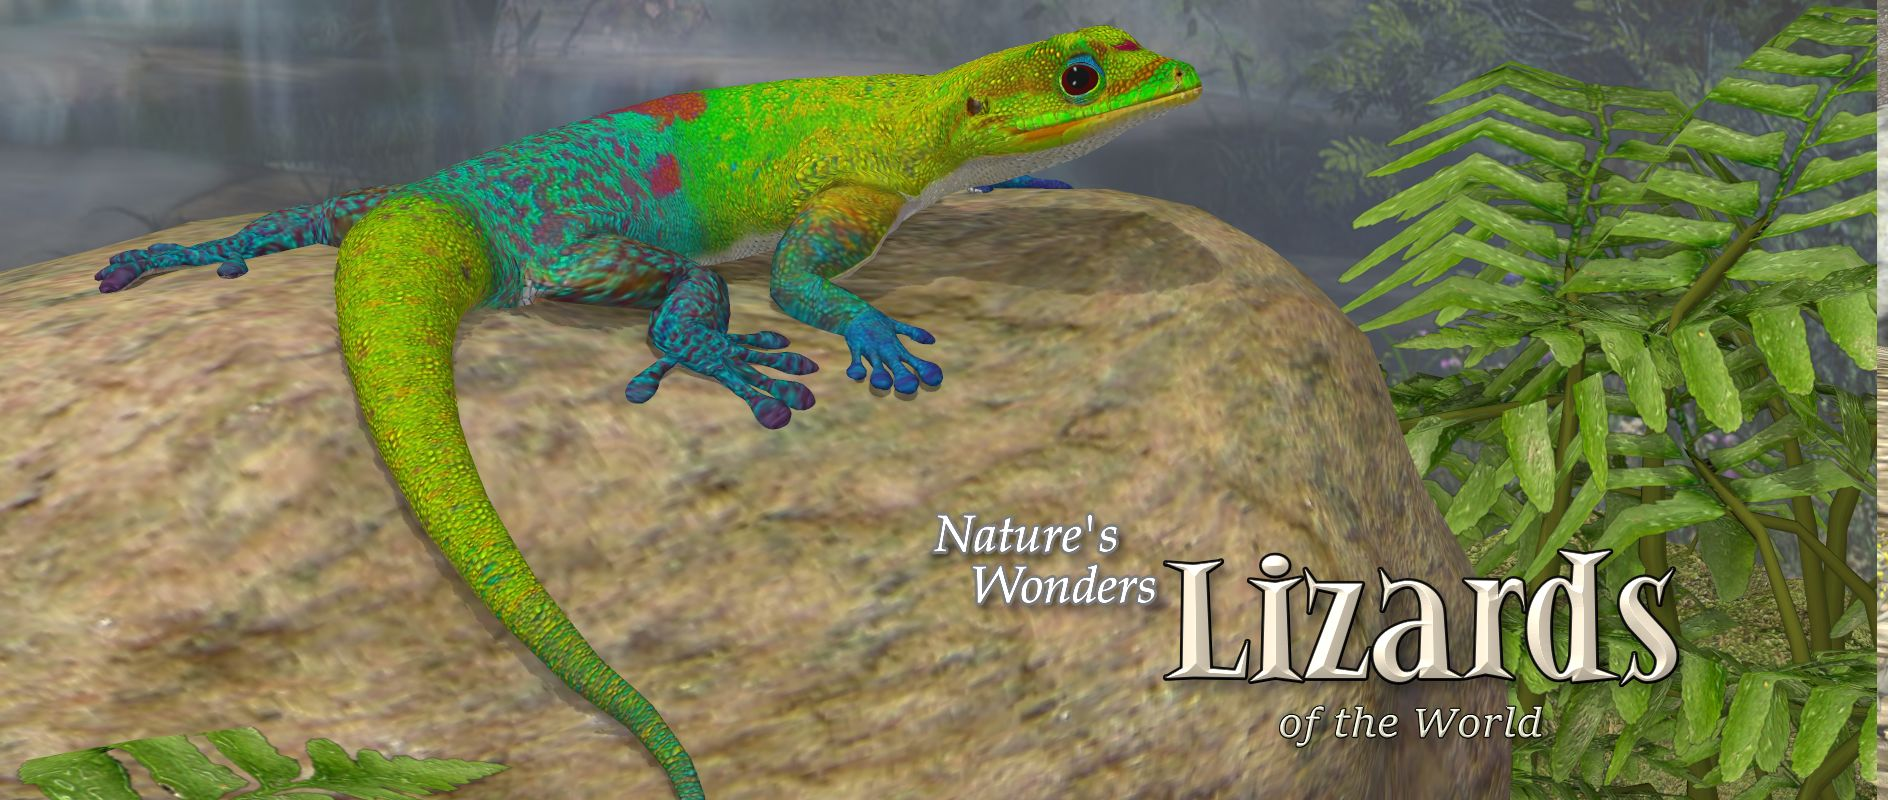 Nature's Wonders Lizards of the World Vol 1